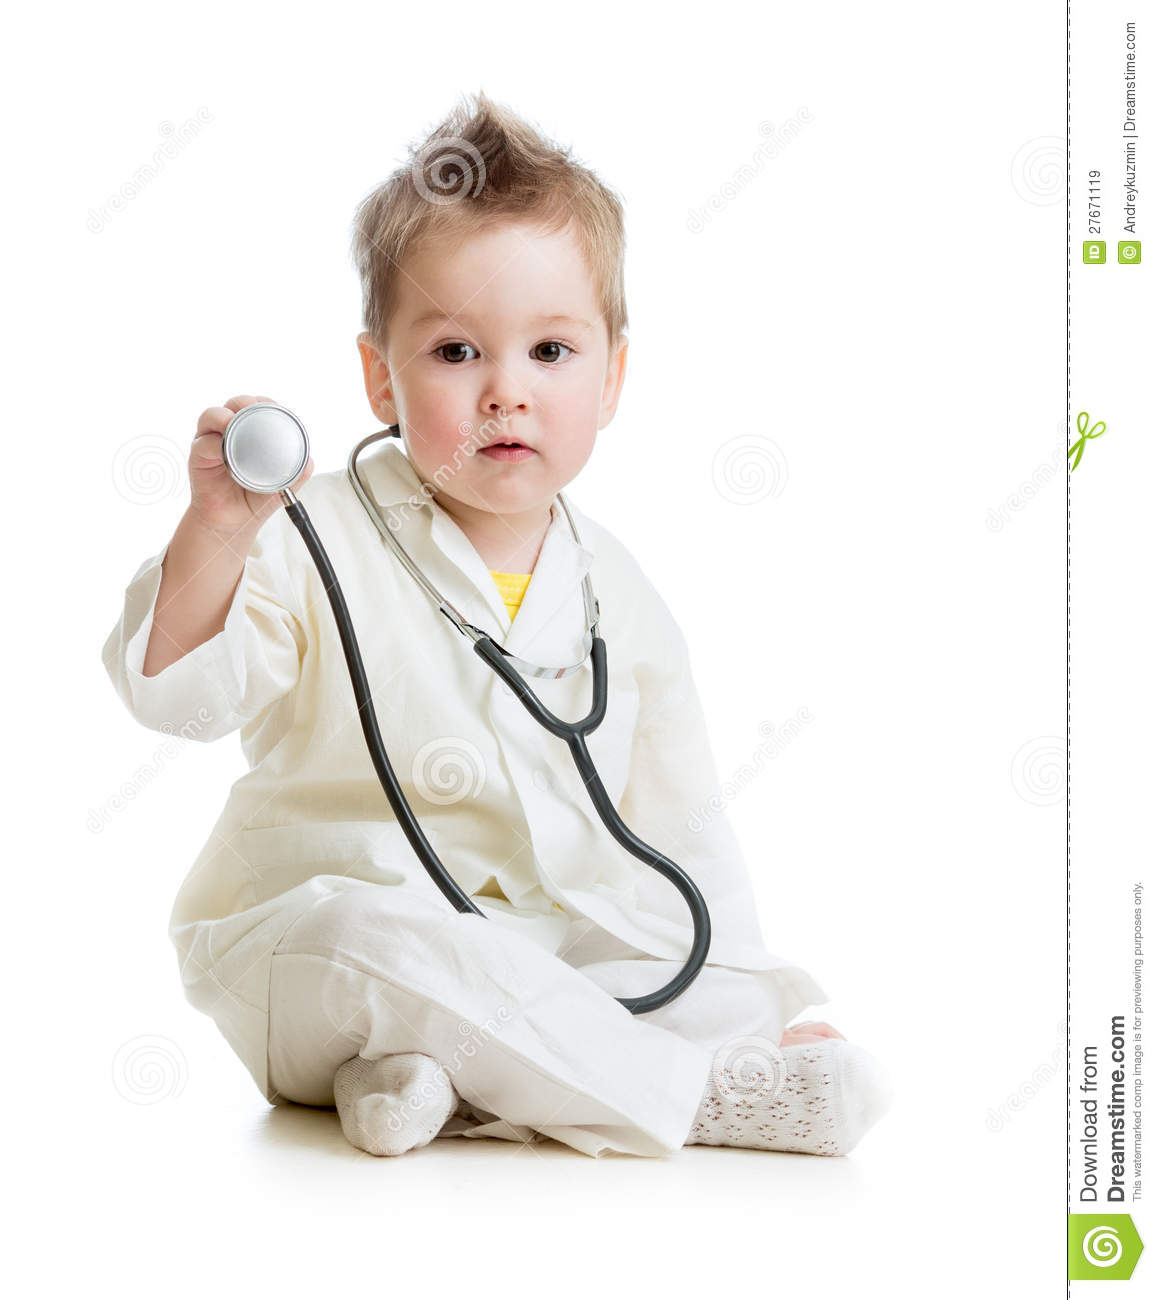 doctor kid Kid or child playing doctor with stethoscope